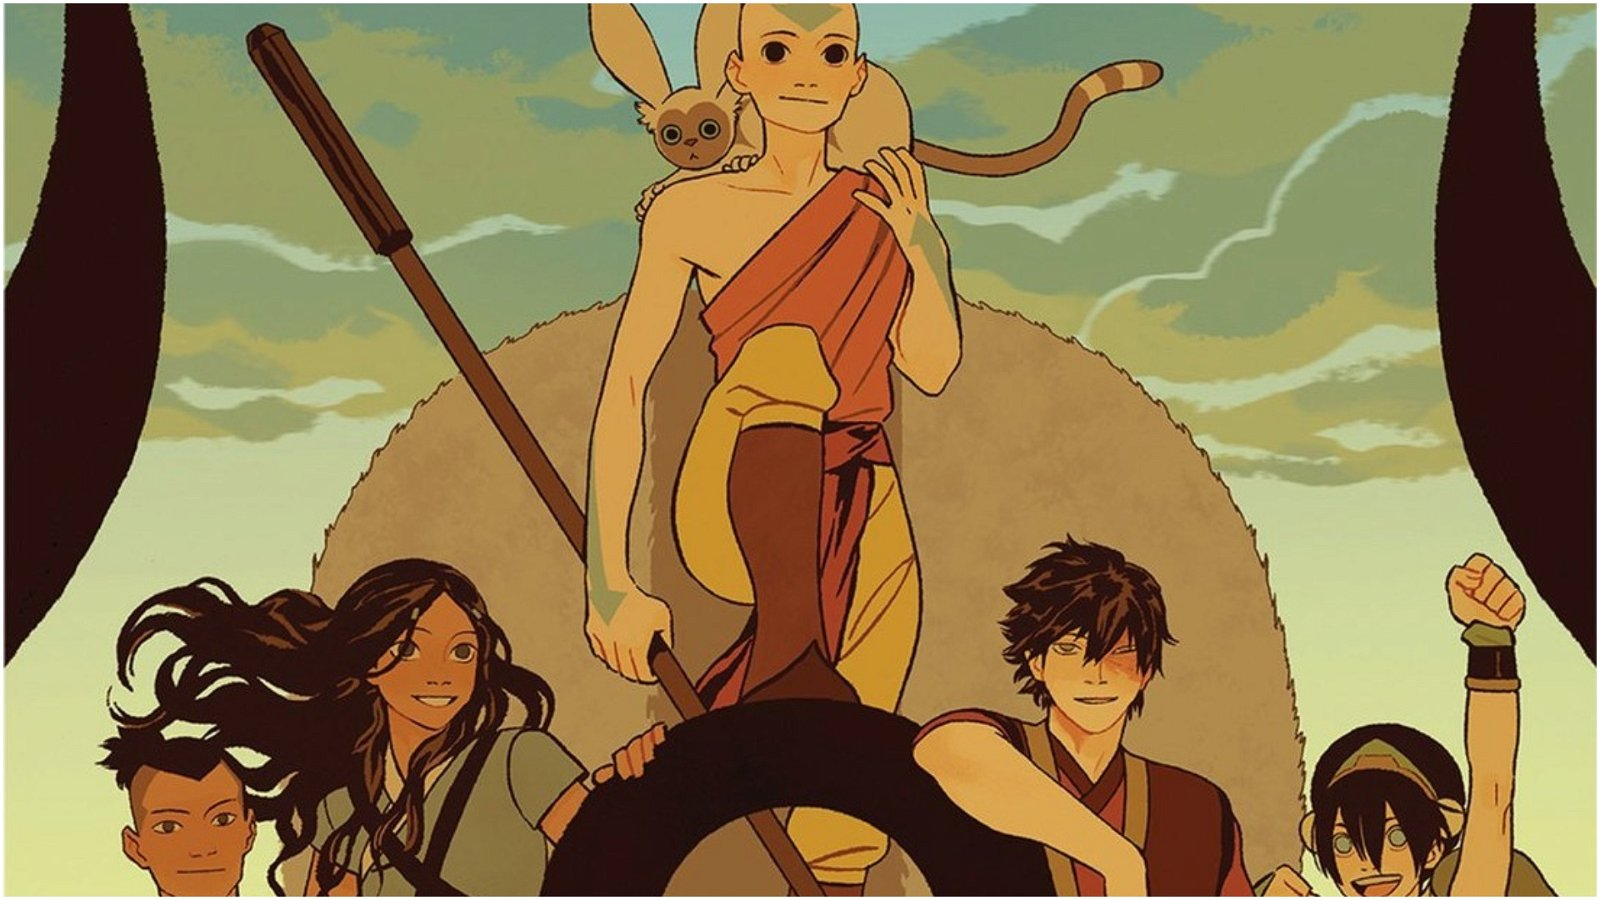 New Avatar The Last Airbender Graphic Novels Announced